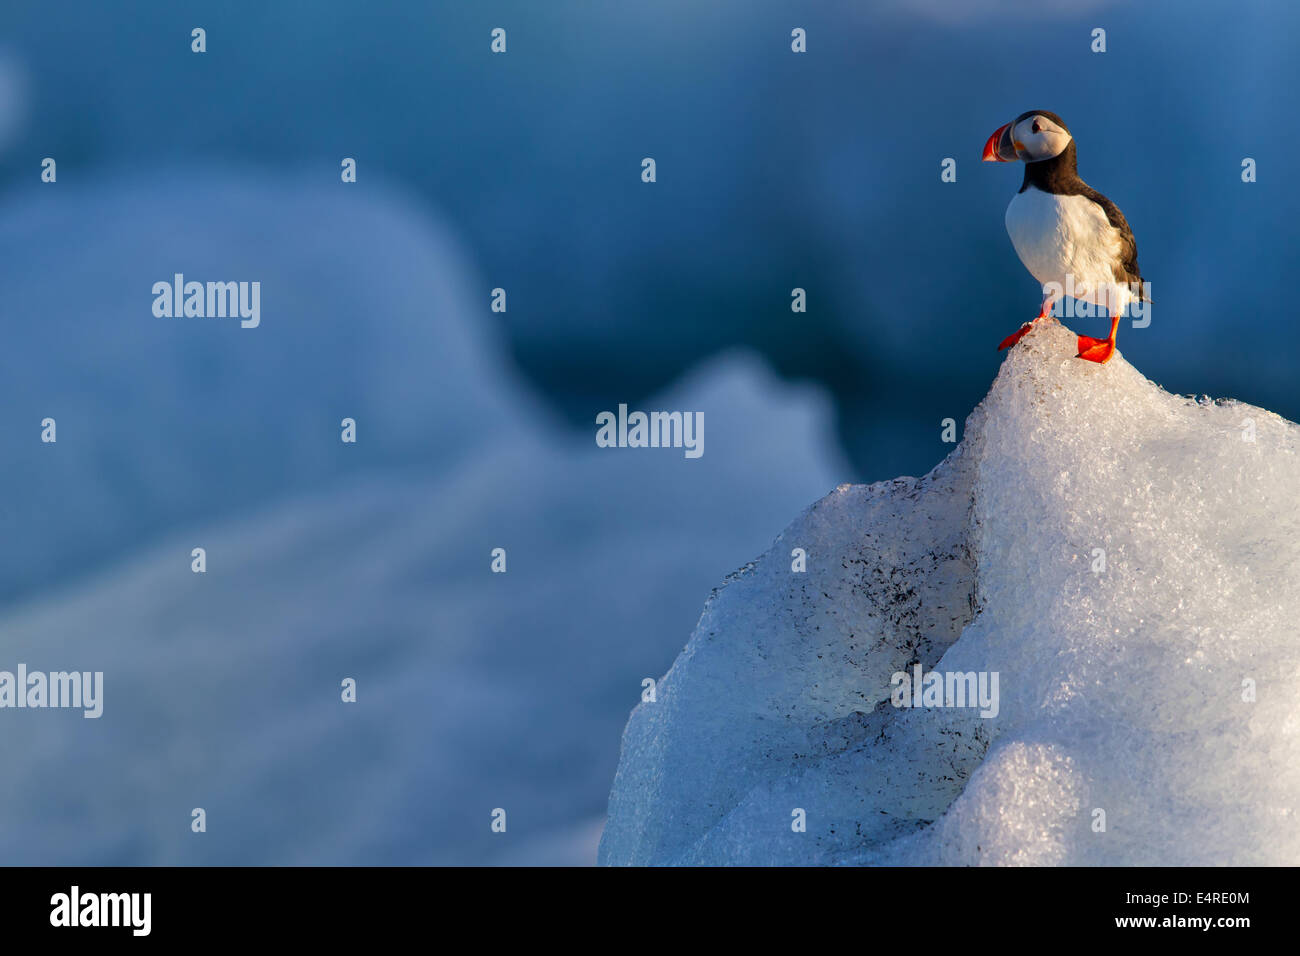 Papagei Taucher, Papageitaucher, Fratercula Arctica, Papageitaucher, Papageitaucher, Fratercula Arctica, Papageientaucher Stockbild